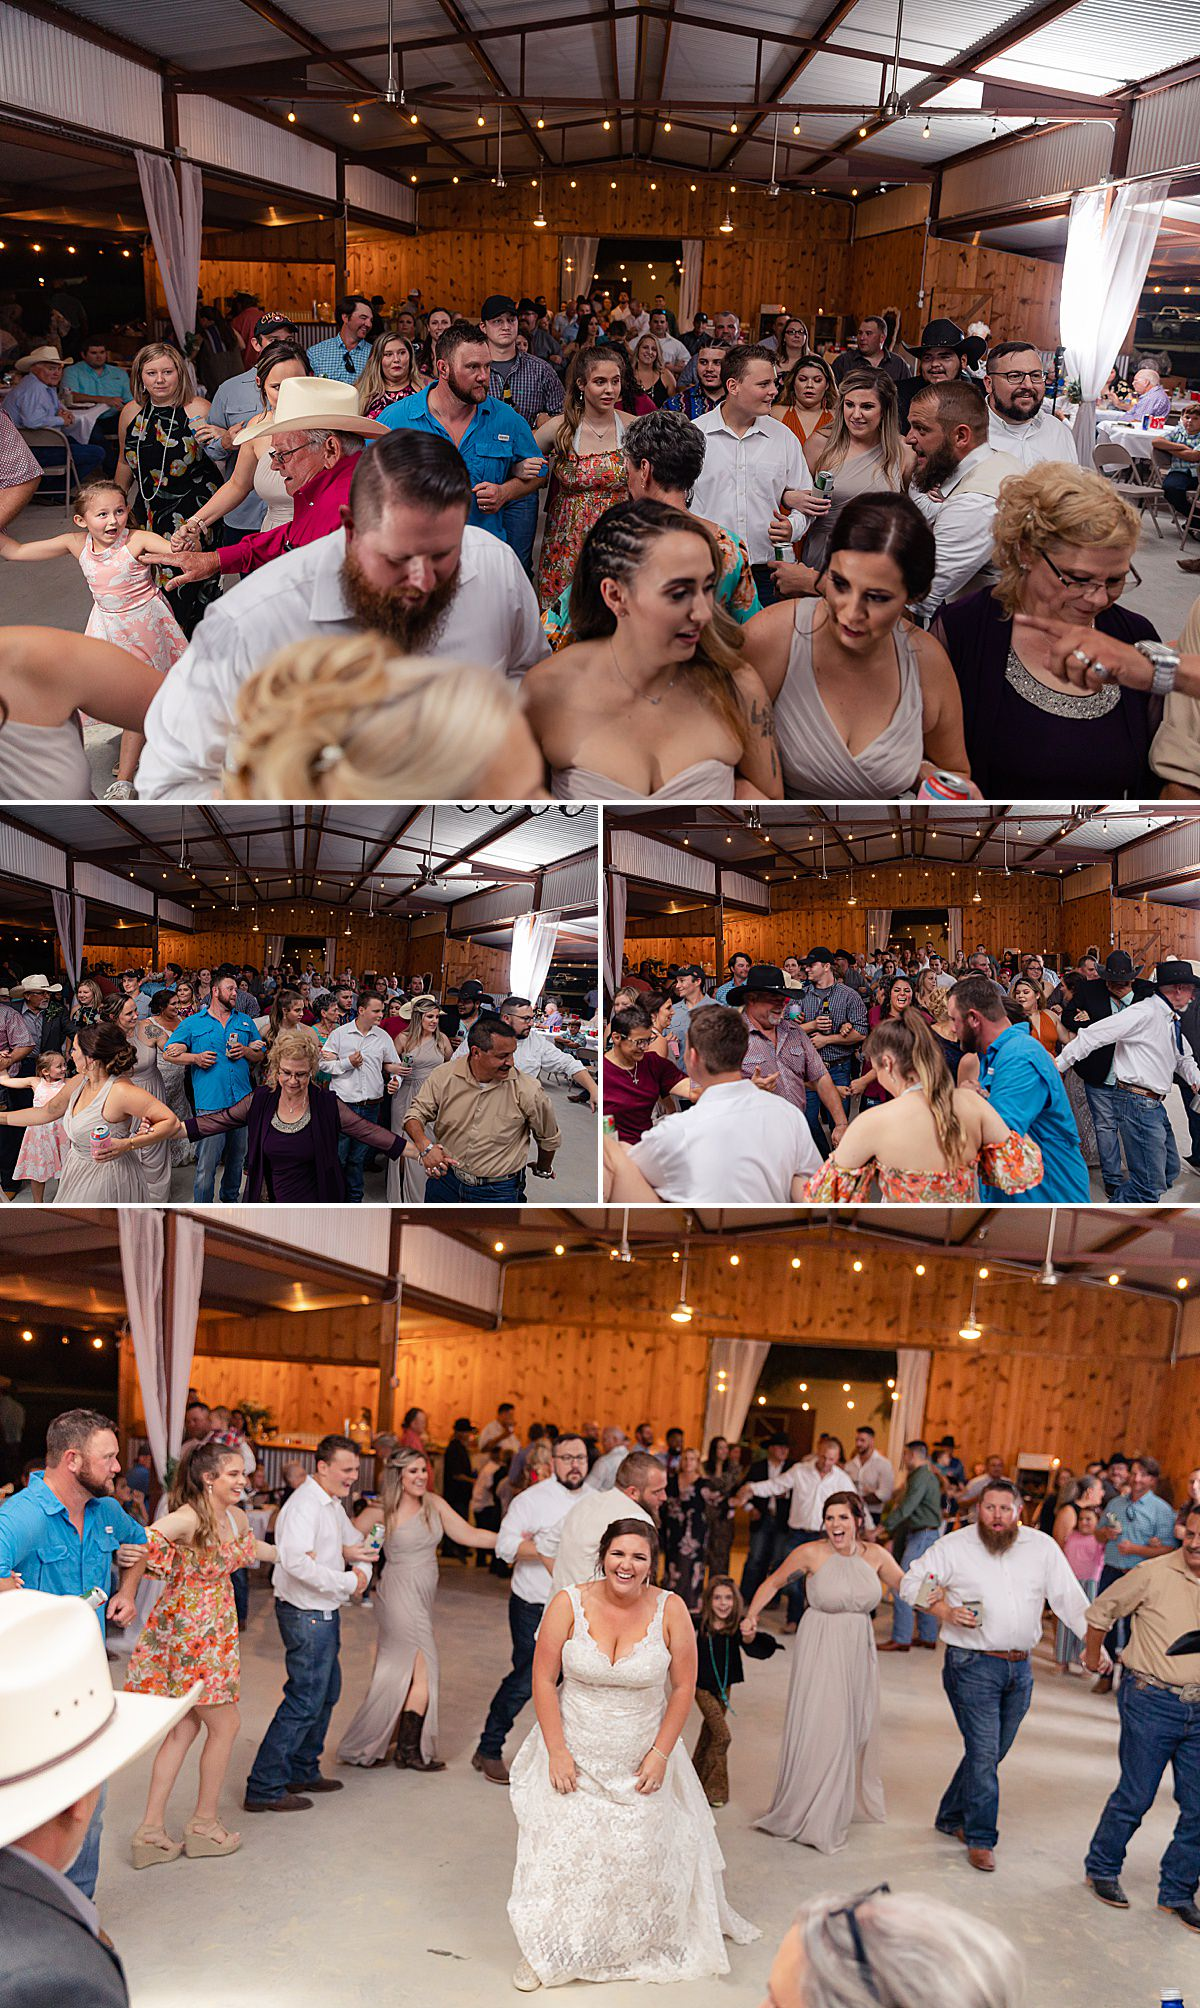 Rustic-Texas-Wedding-Hollow-Creek-Ranch-Carly-Barton-Photography_0018.jpg